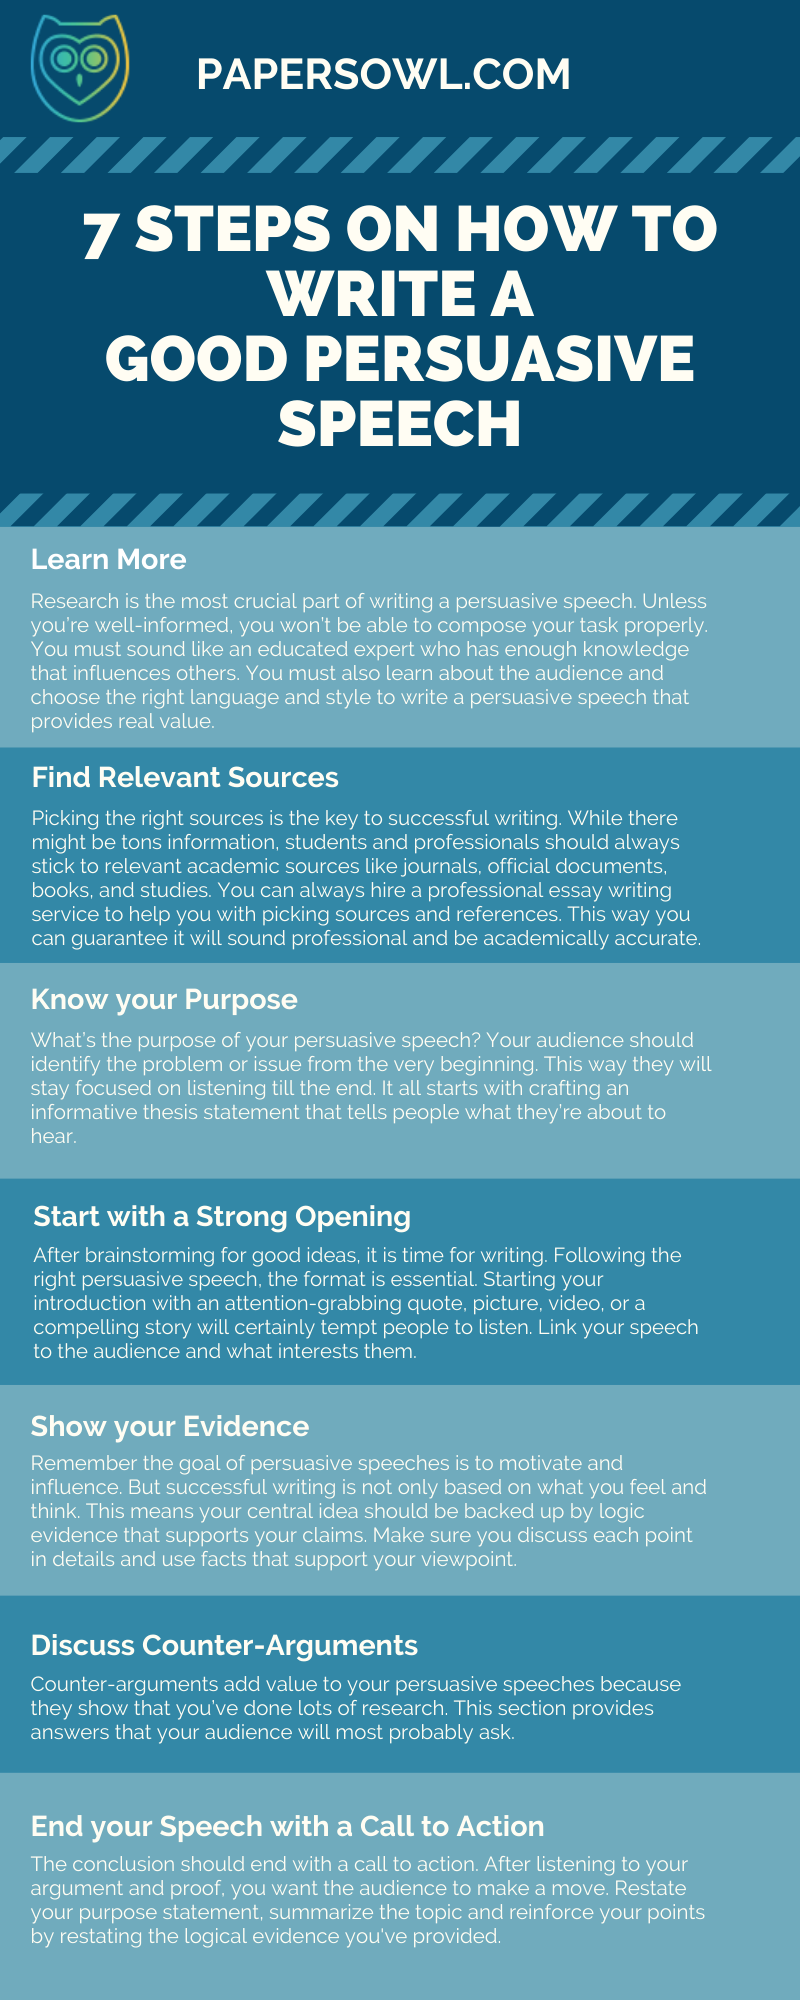 How To Write A Persuasive Speech A Step By Step Guide Persuasive Speech Topics Persuasion Speech Topics